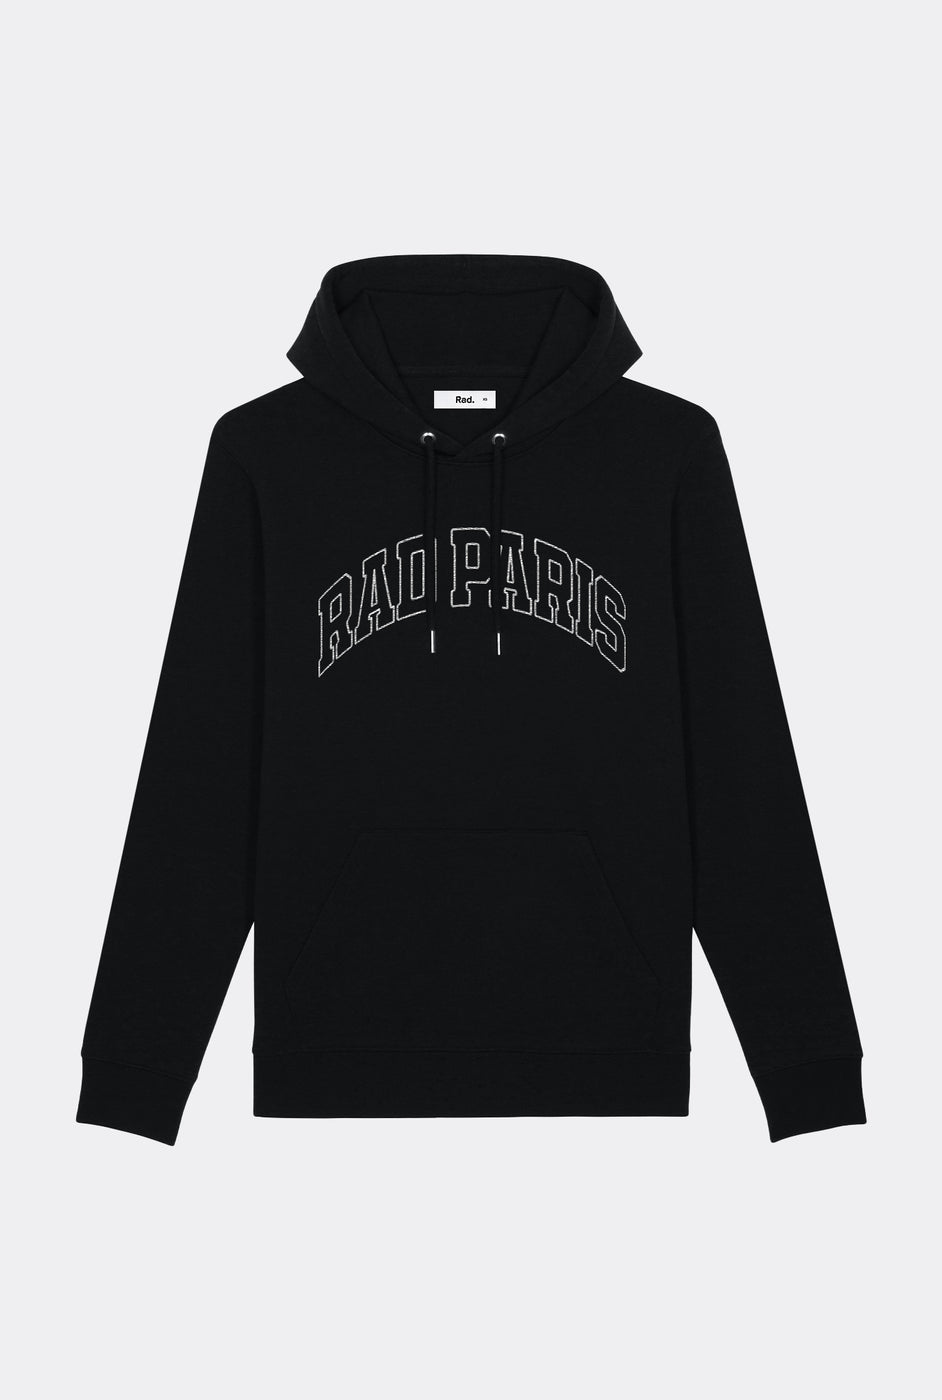 Hoodie Black Rad Paris - Embroidered